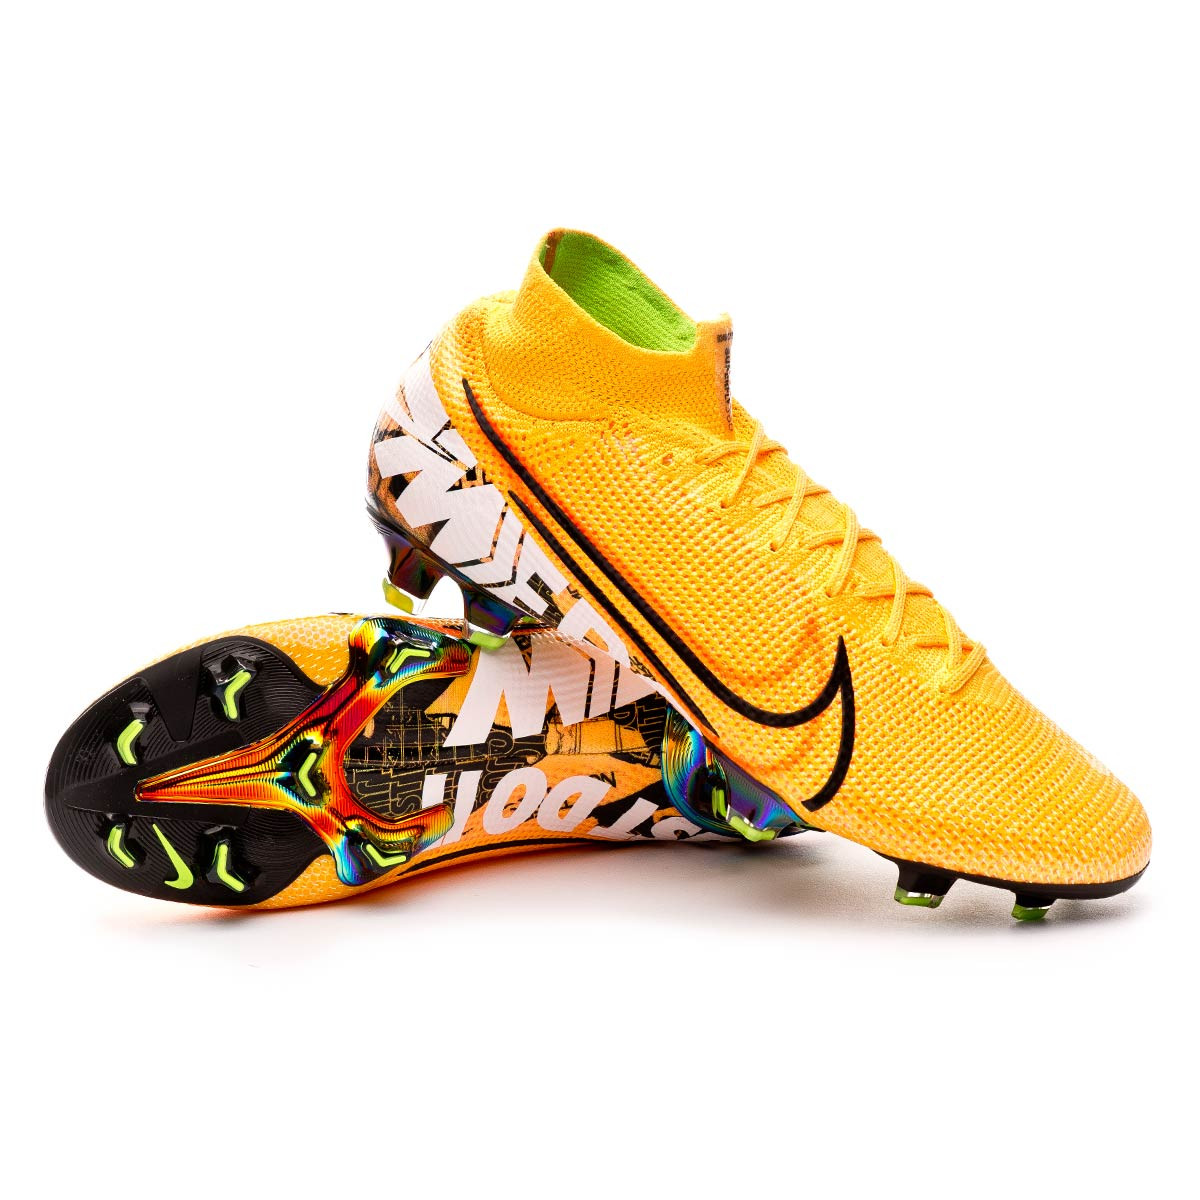 new design factory authentic best sale Chaussure de foot Nike Mercurial Superfly VII Elite Special ...